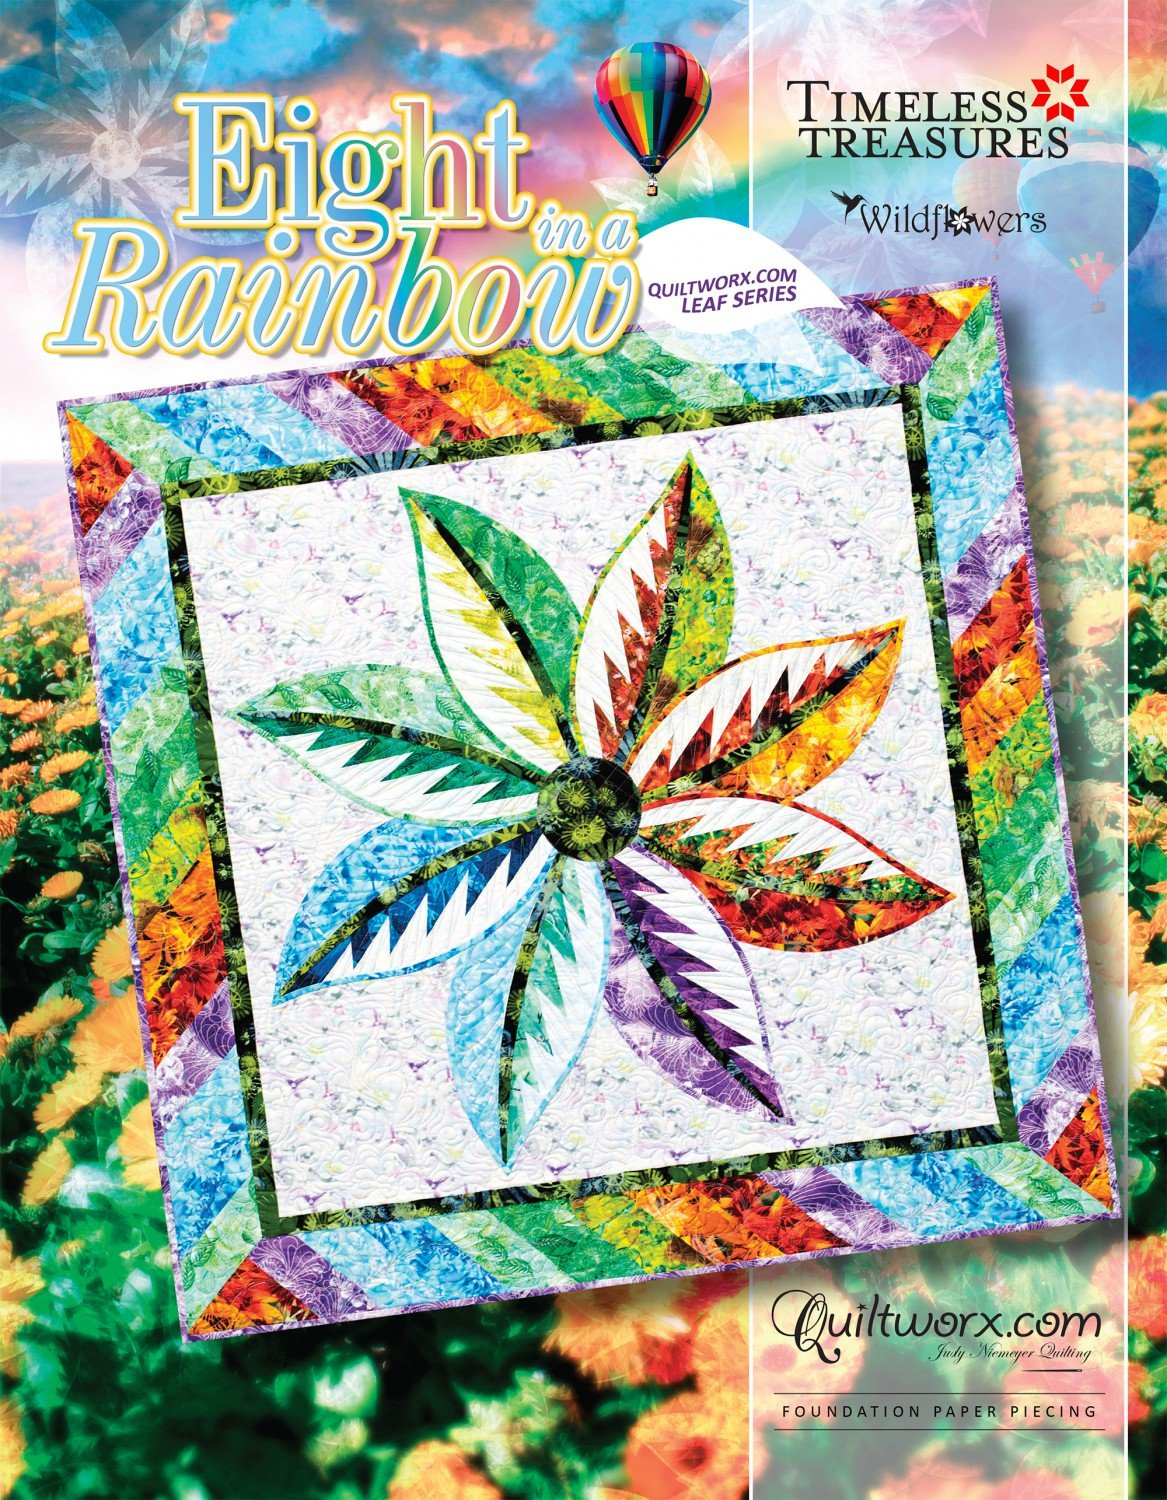 Eight In a Rainbow - Quiltworx Leaf Series